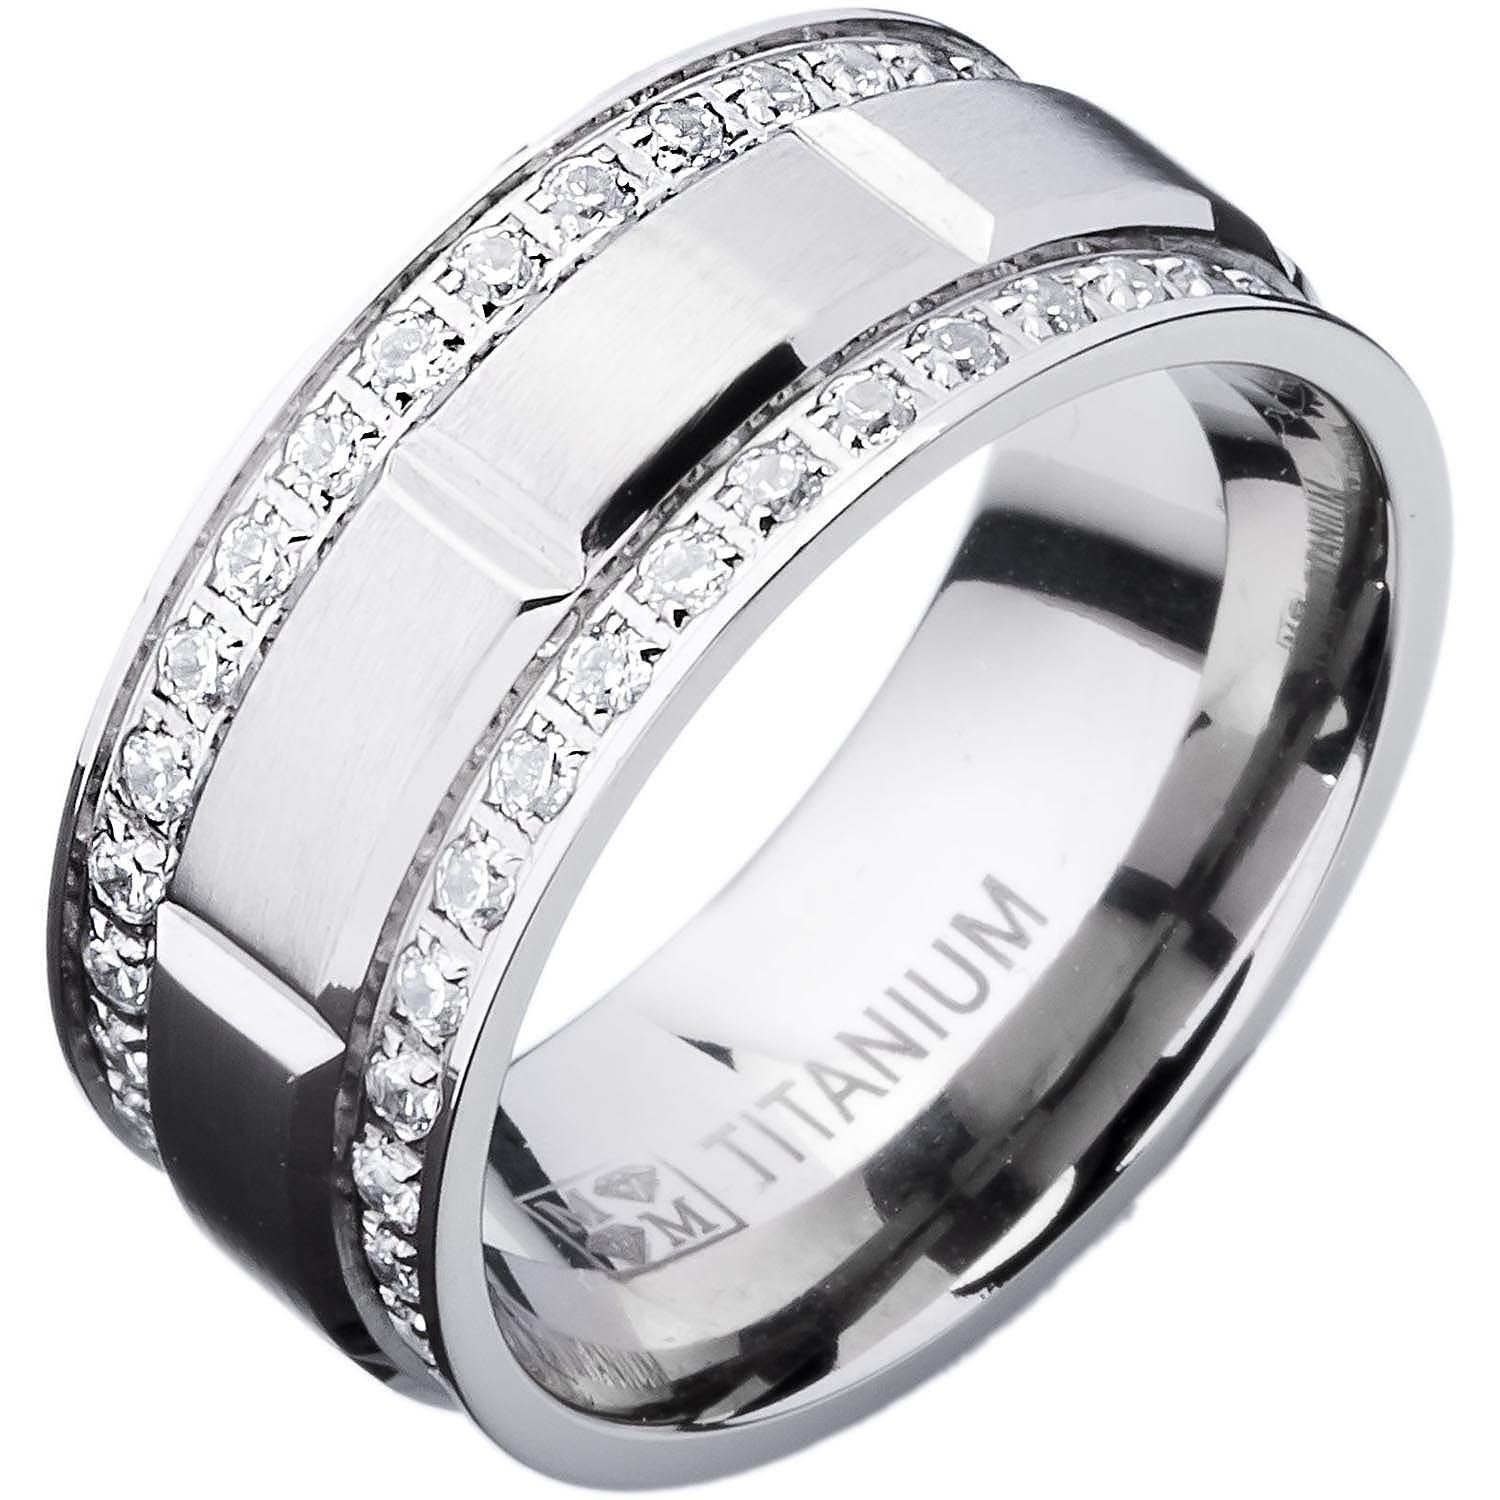 wedding band engagement top ring for mens is a fingerprint rings the men masculine